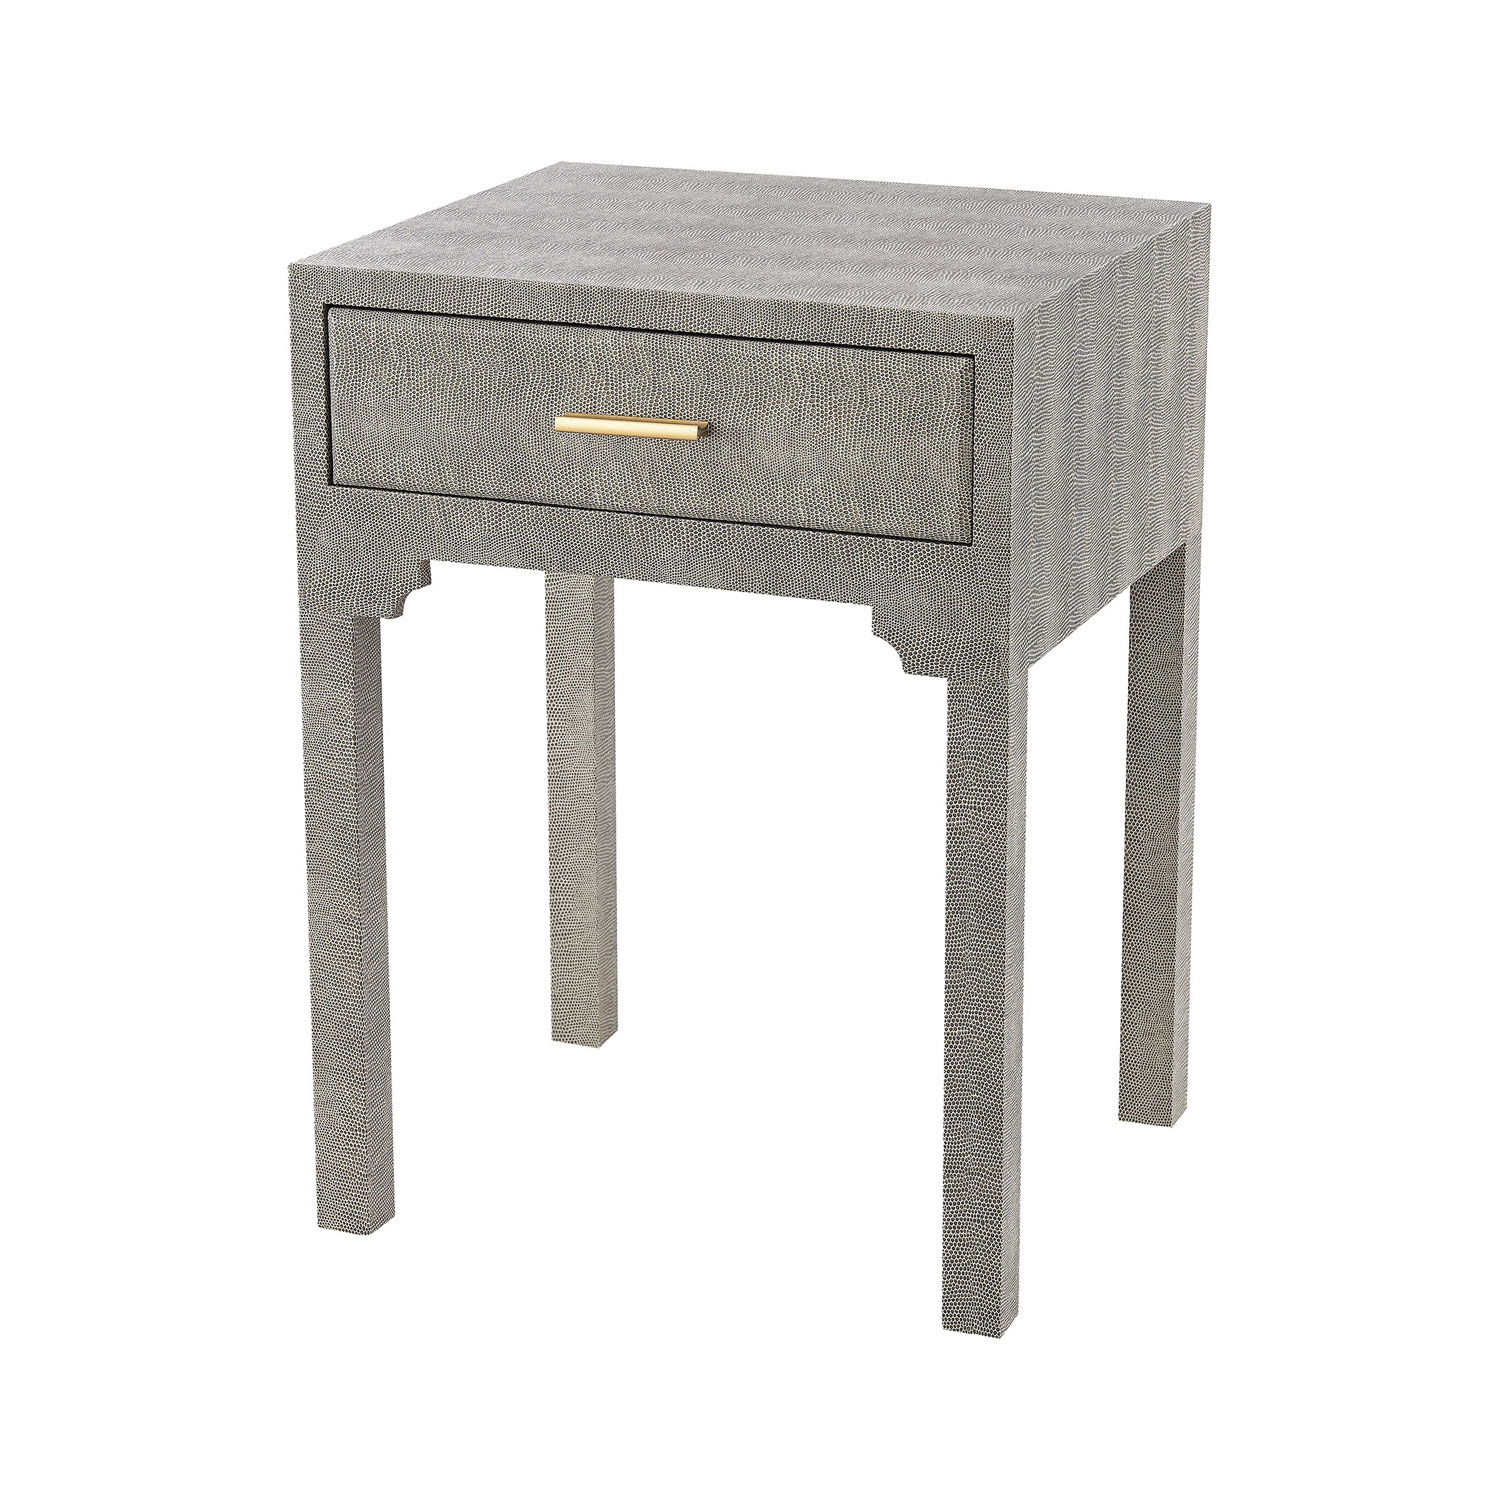 sterling industries sands point grey faux shagreen accent table wood hover zoom colorful outdoor side tables unusual coffee solid cherry end target chalk paint nate berkus marble